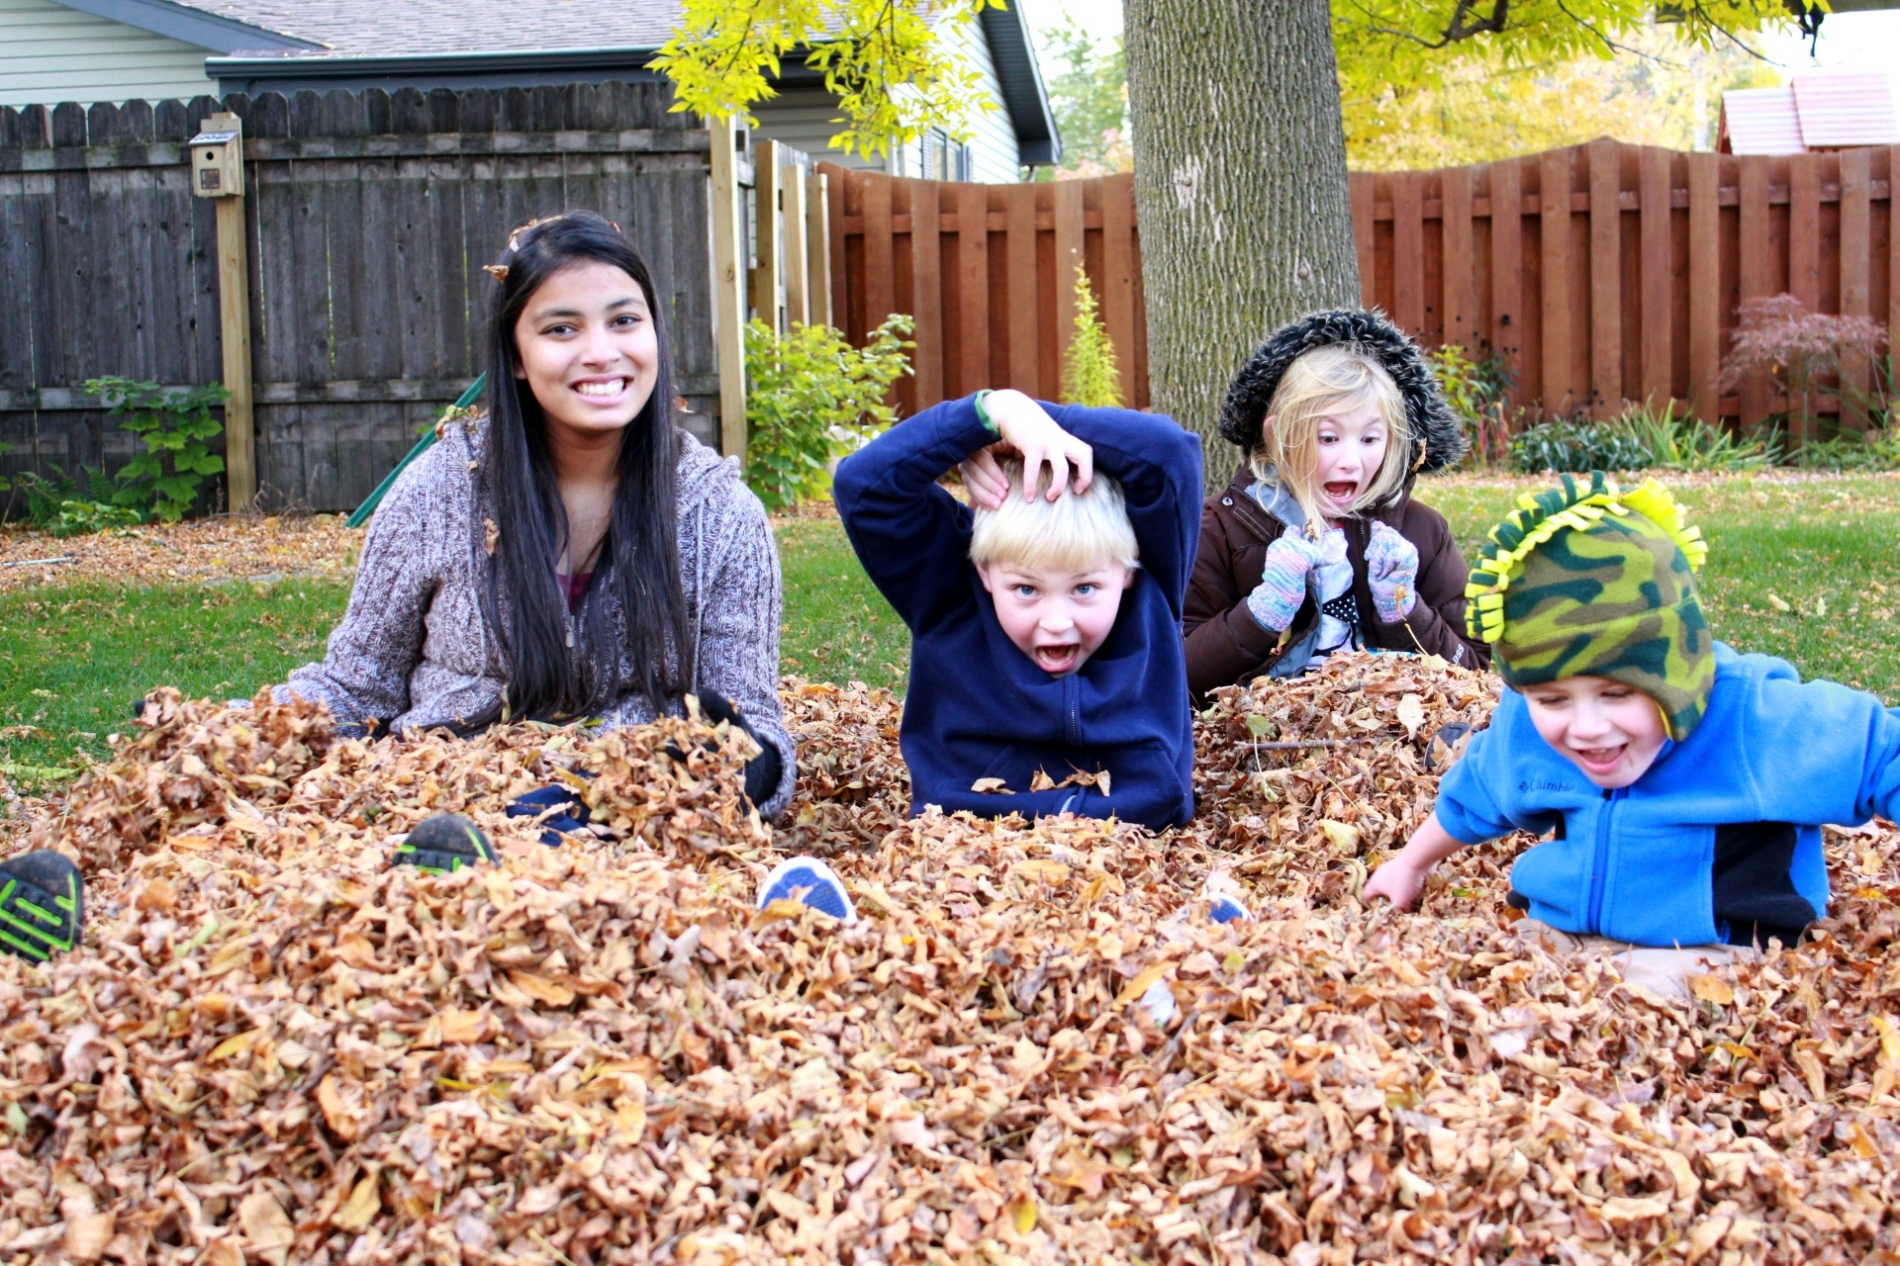 PAX Exchange Student from Pakistan Playing in Leaves with Young Host Siblings